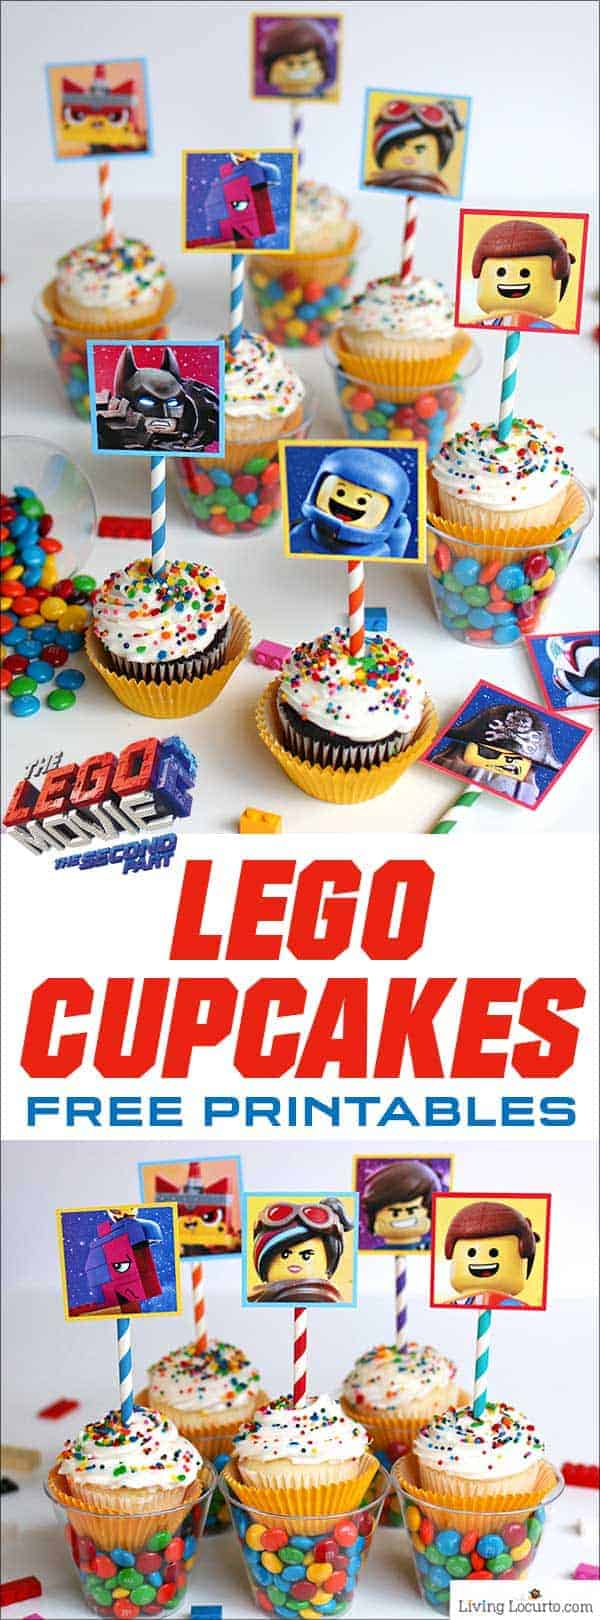 LEGO Cupcakes with free printables from The LEGO Movie 2. A fun dessert idea for a LEGO birthday party. Colorful candy cups make an extra awesome treat! #LEGO #Partyideas #printables #cupcakes